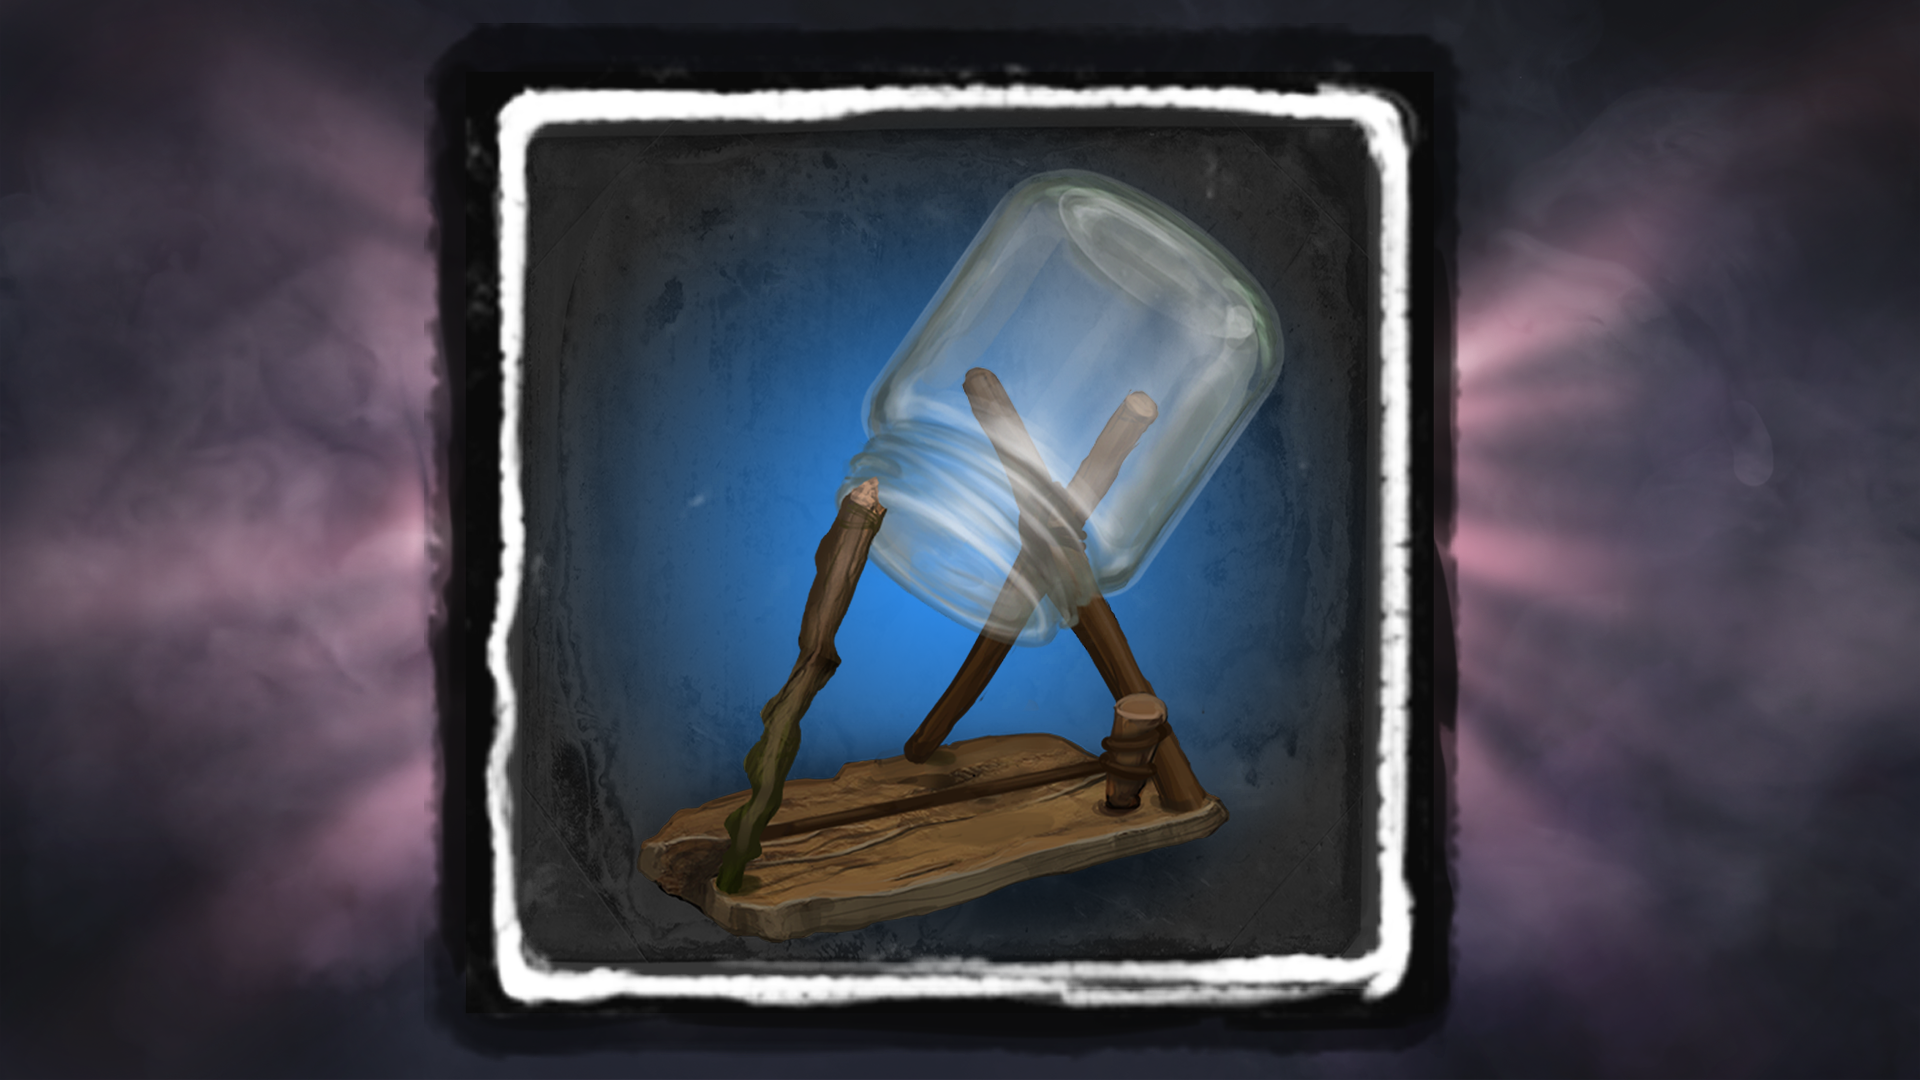 Icon for Jelly Jar